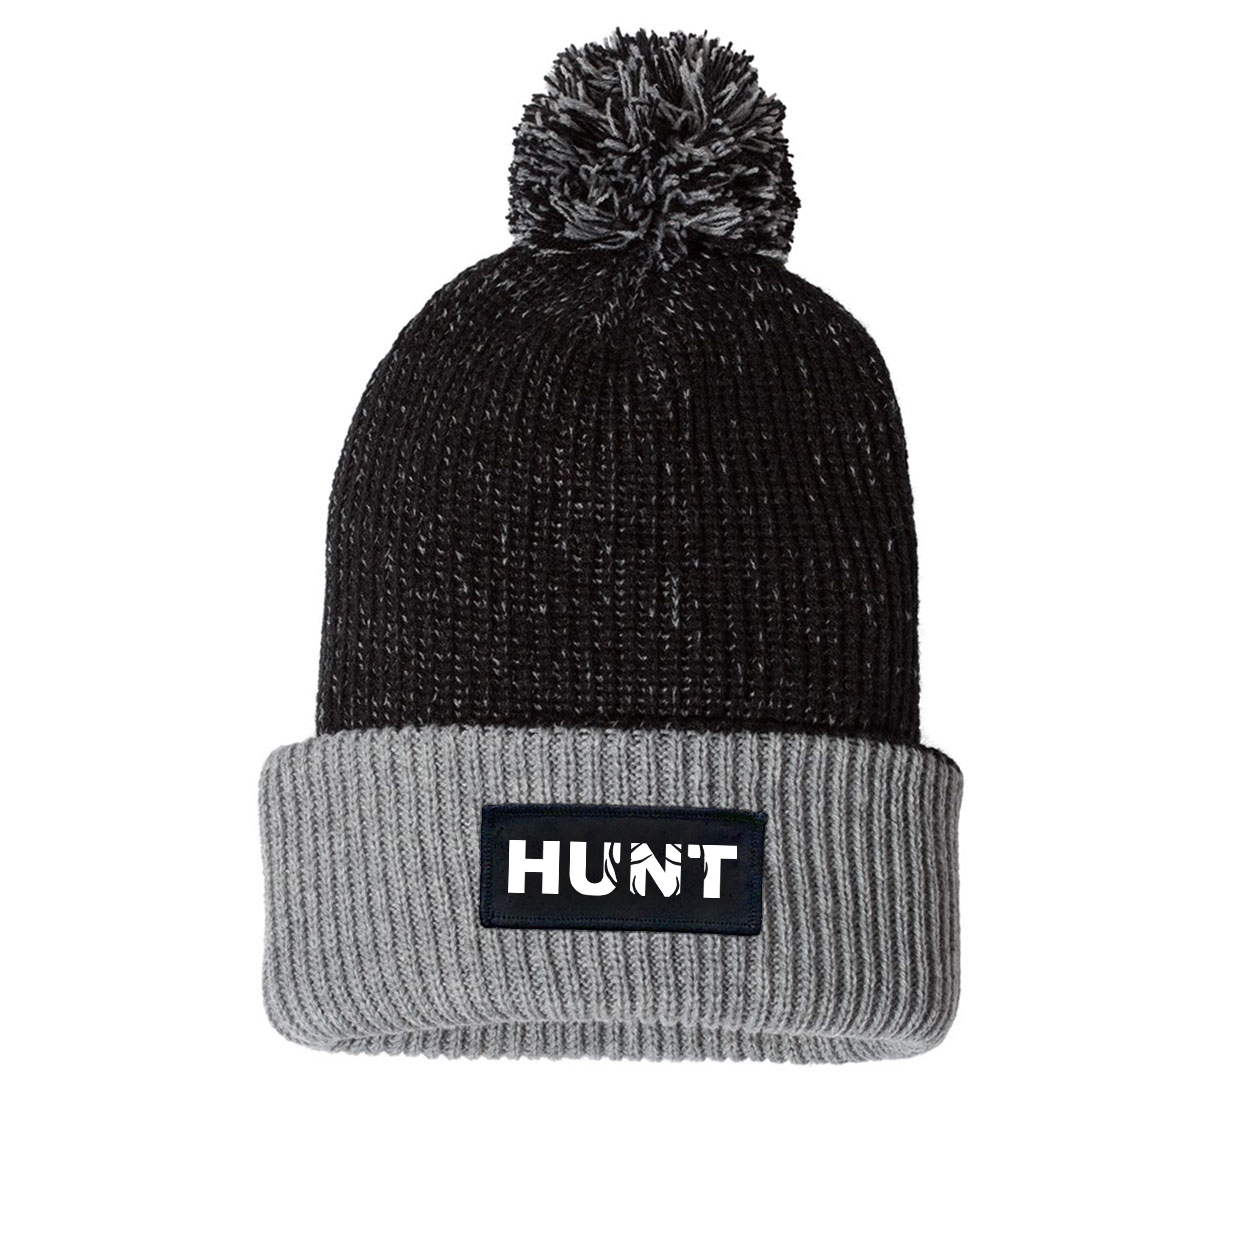 Hunt Rack Logo Night Out Woven Patch Roll Up Pom Knit Beanie Black/Gray (White Logo)